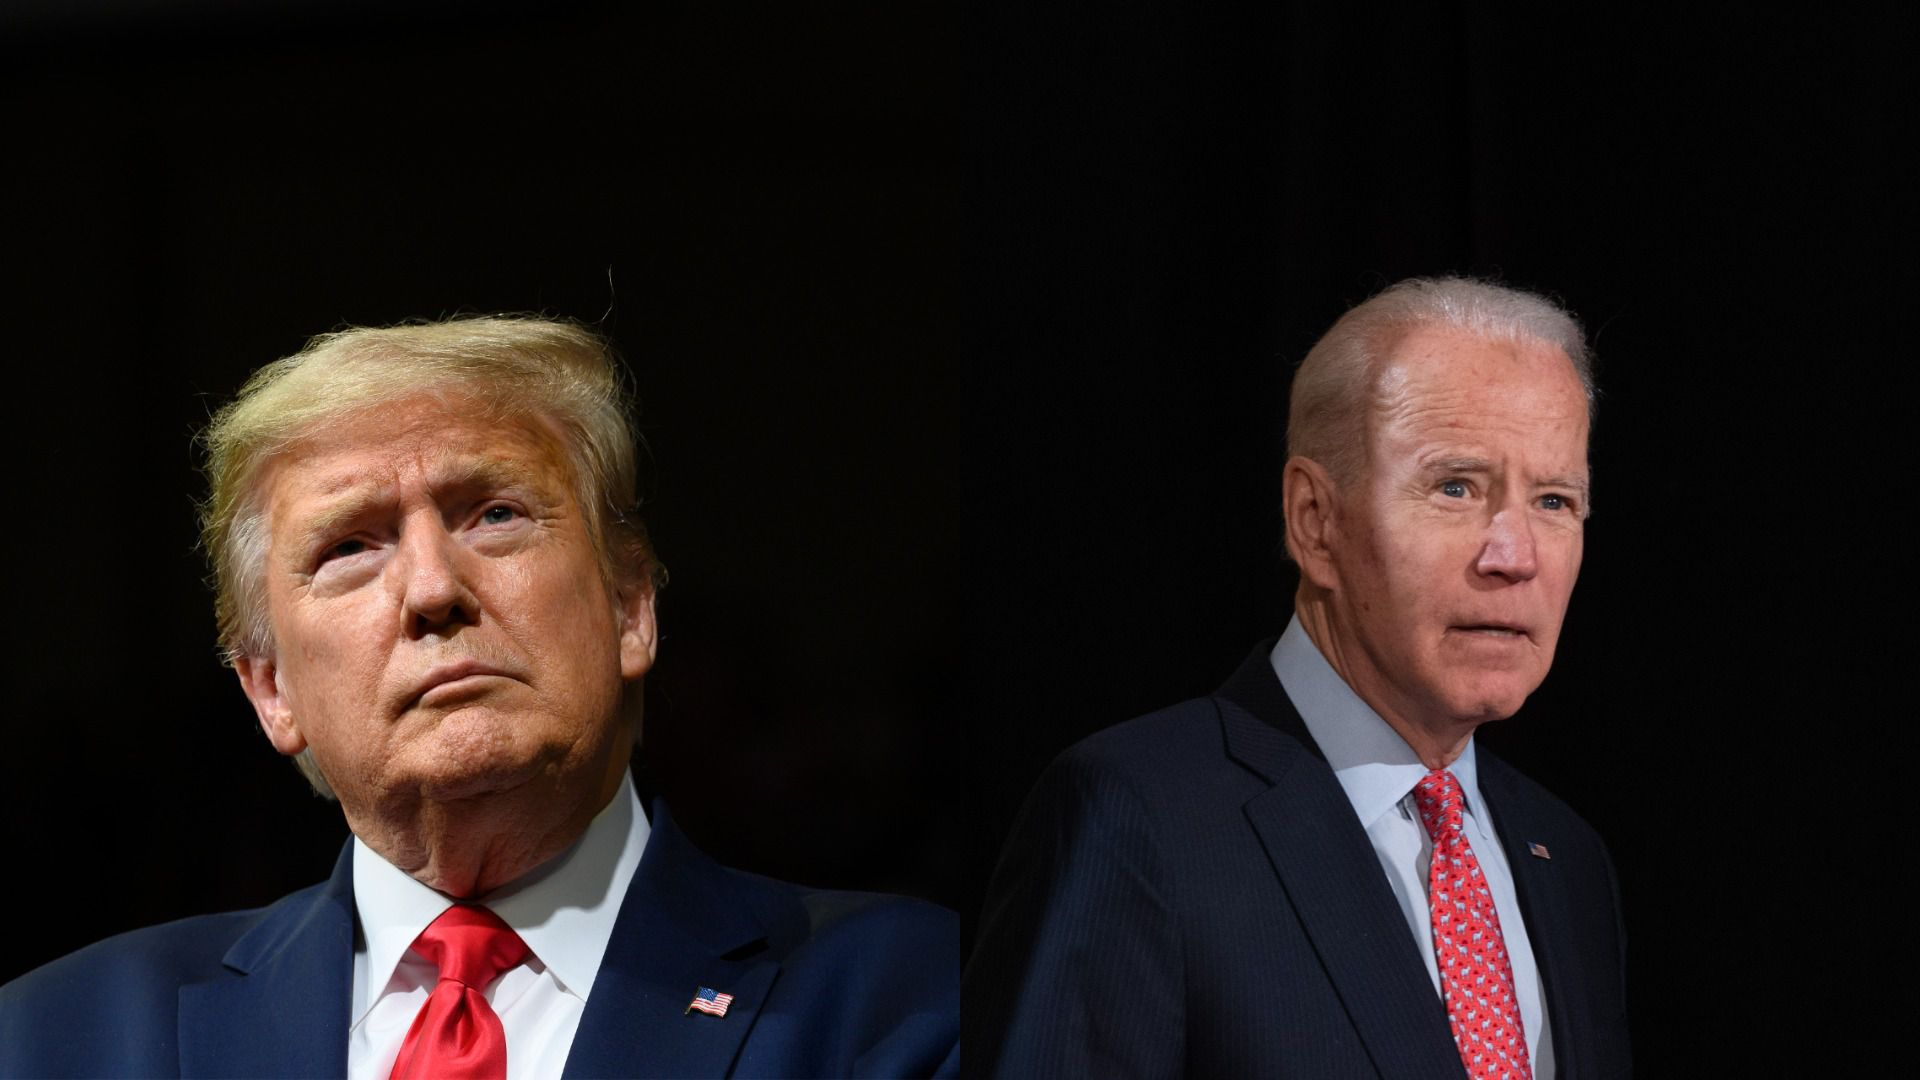 Trump pulls tighter with Biden in nationwide polling - Axios